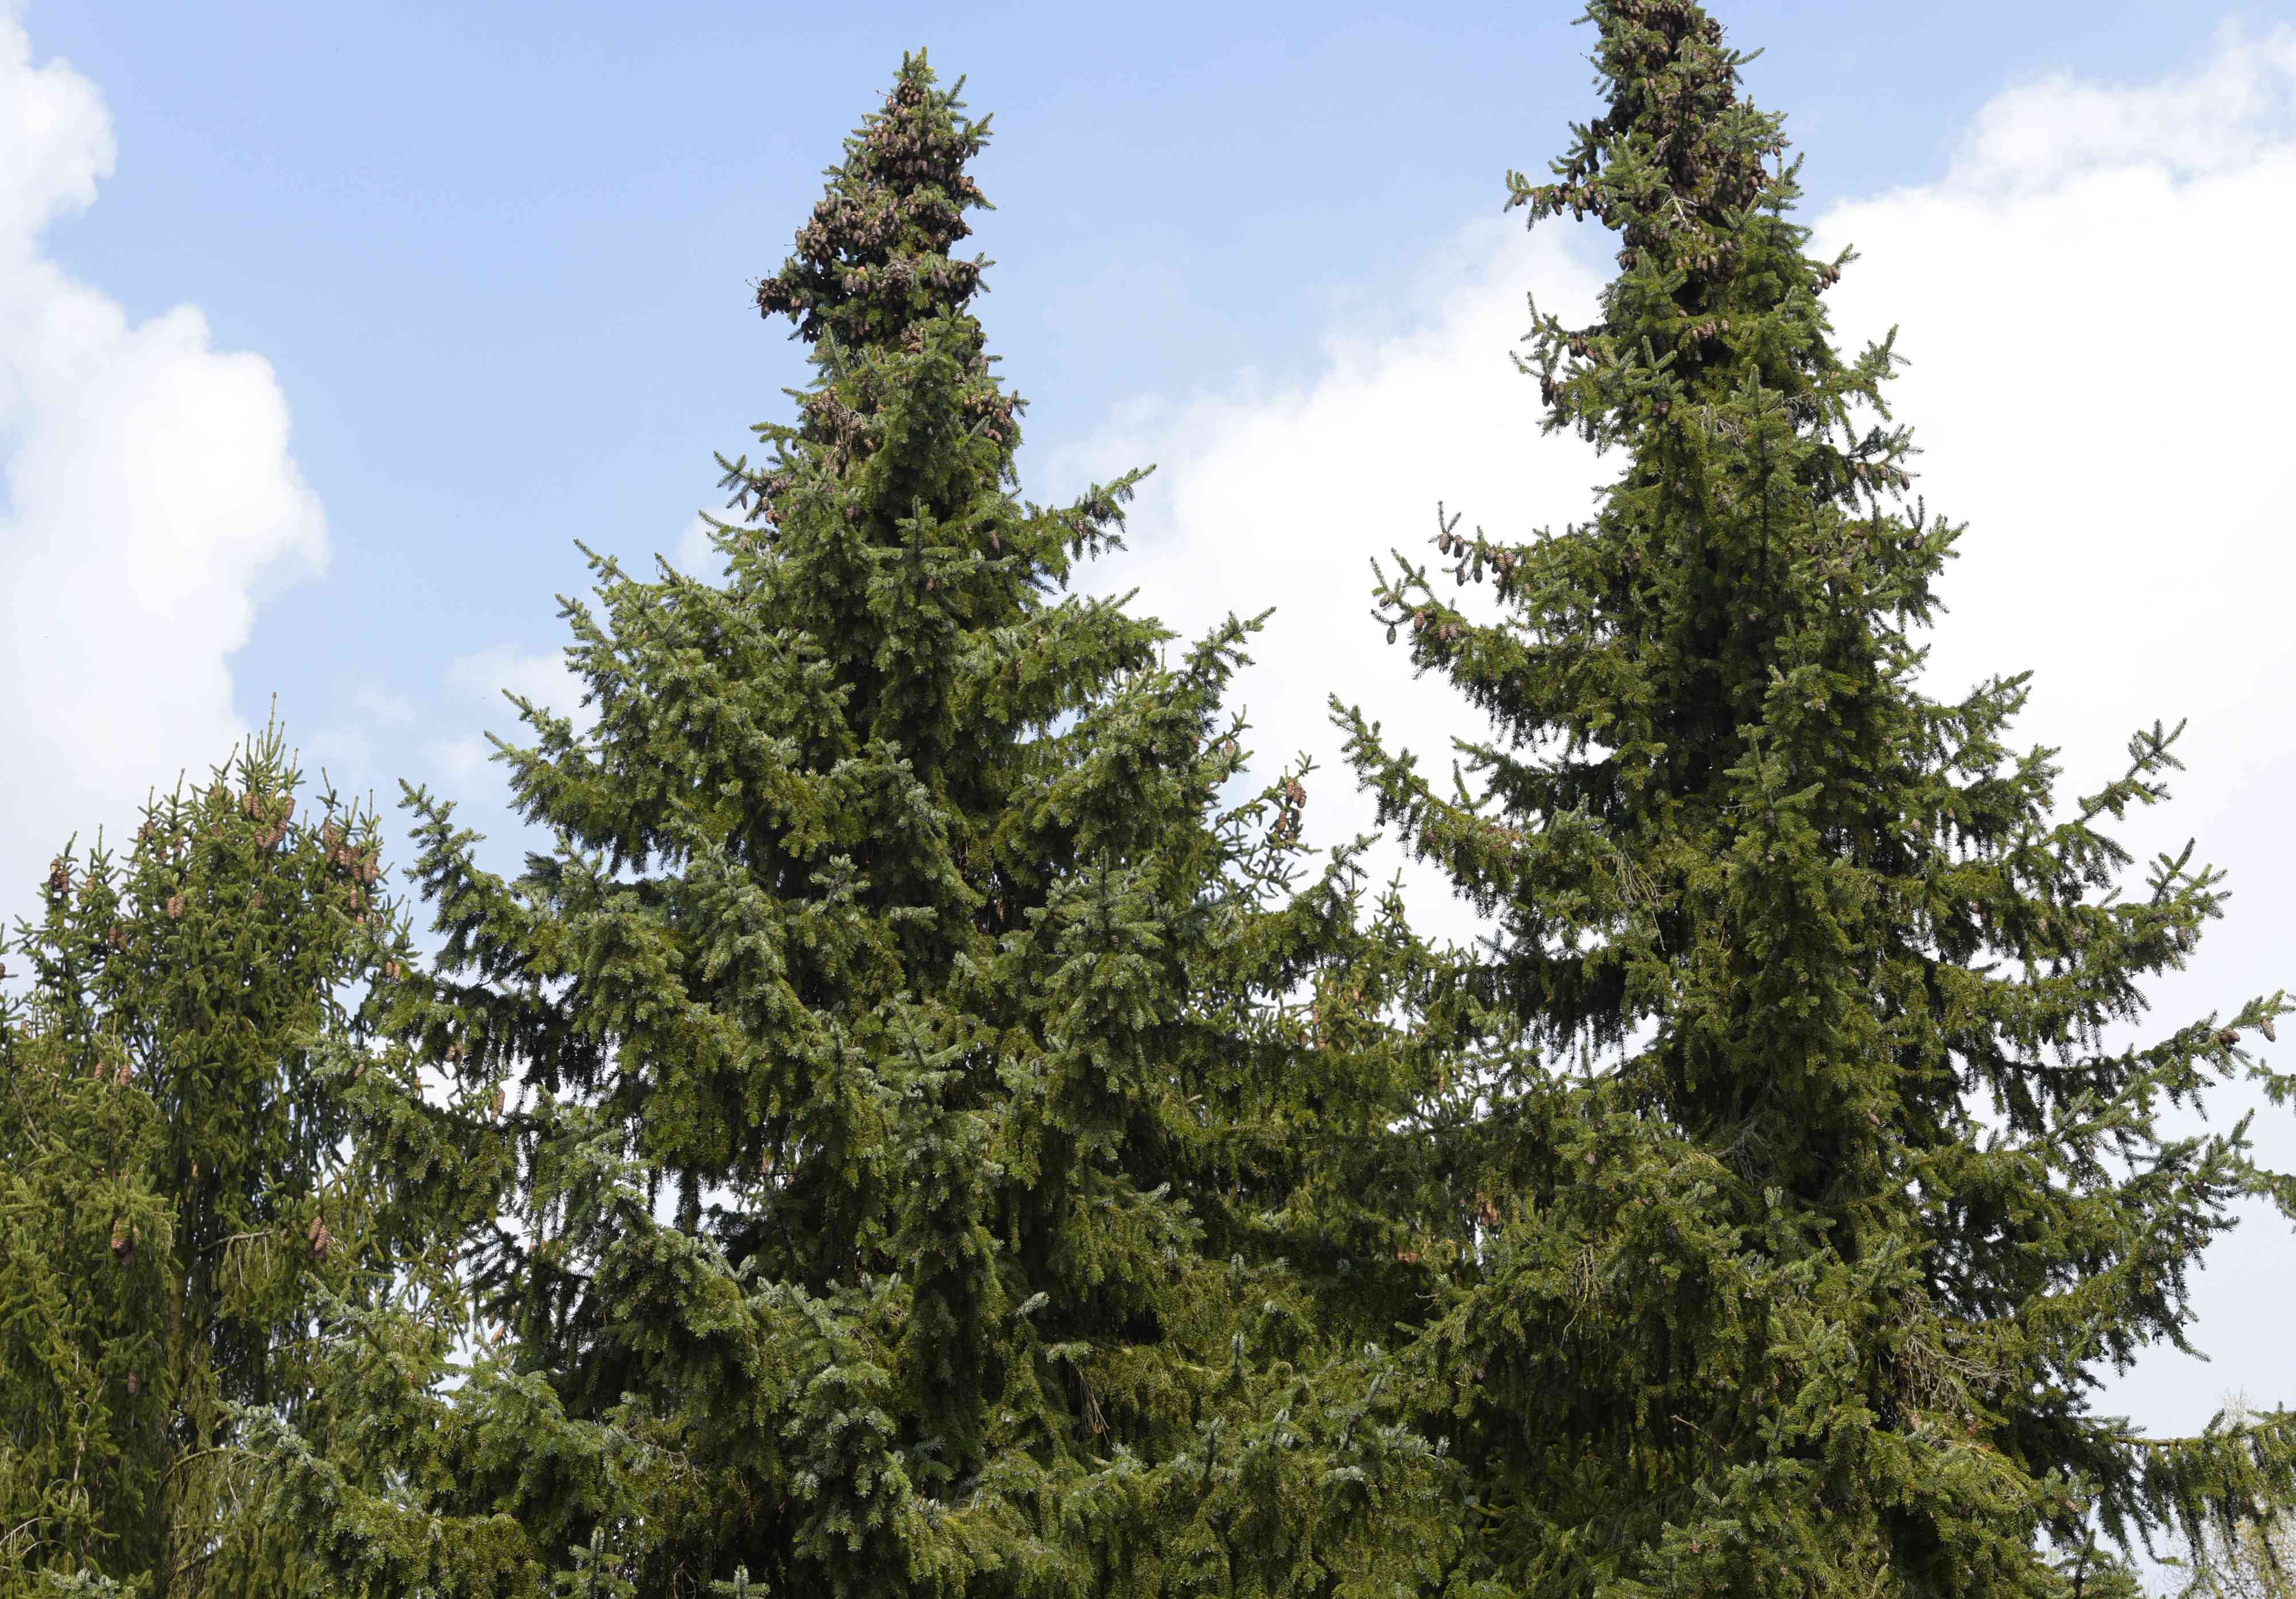 Serbian spruce tree tops against blue and cloudy sky